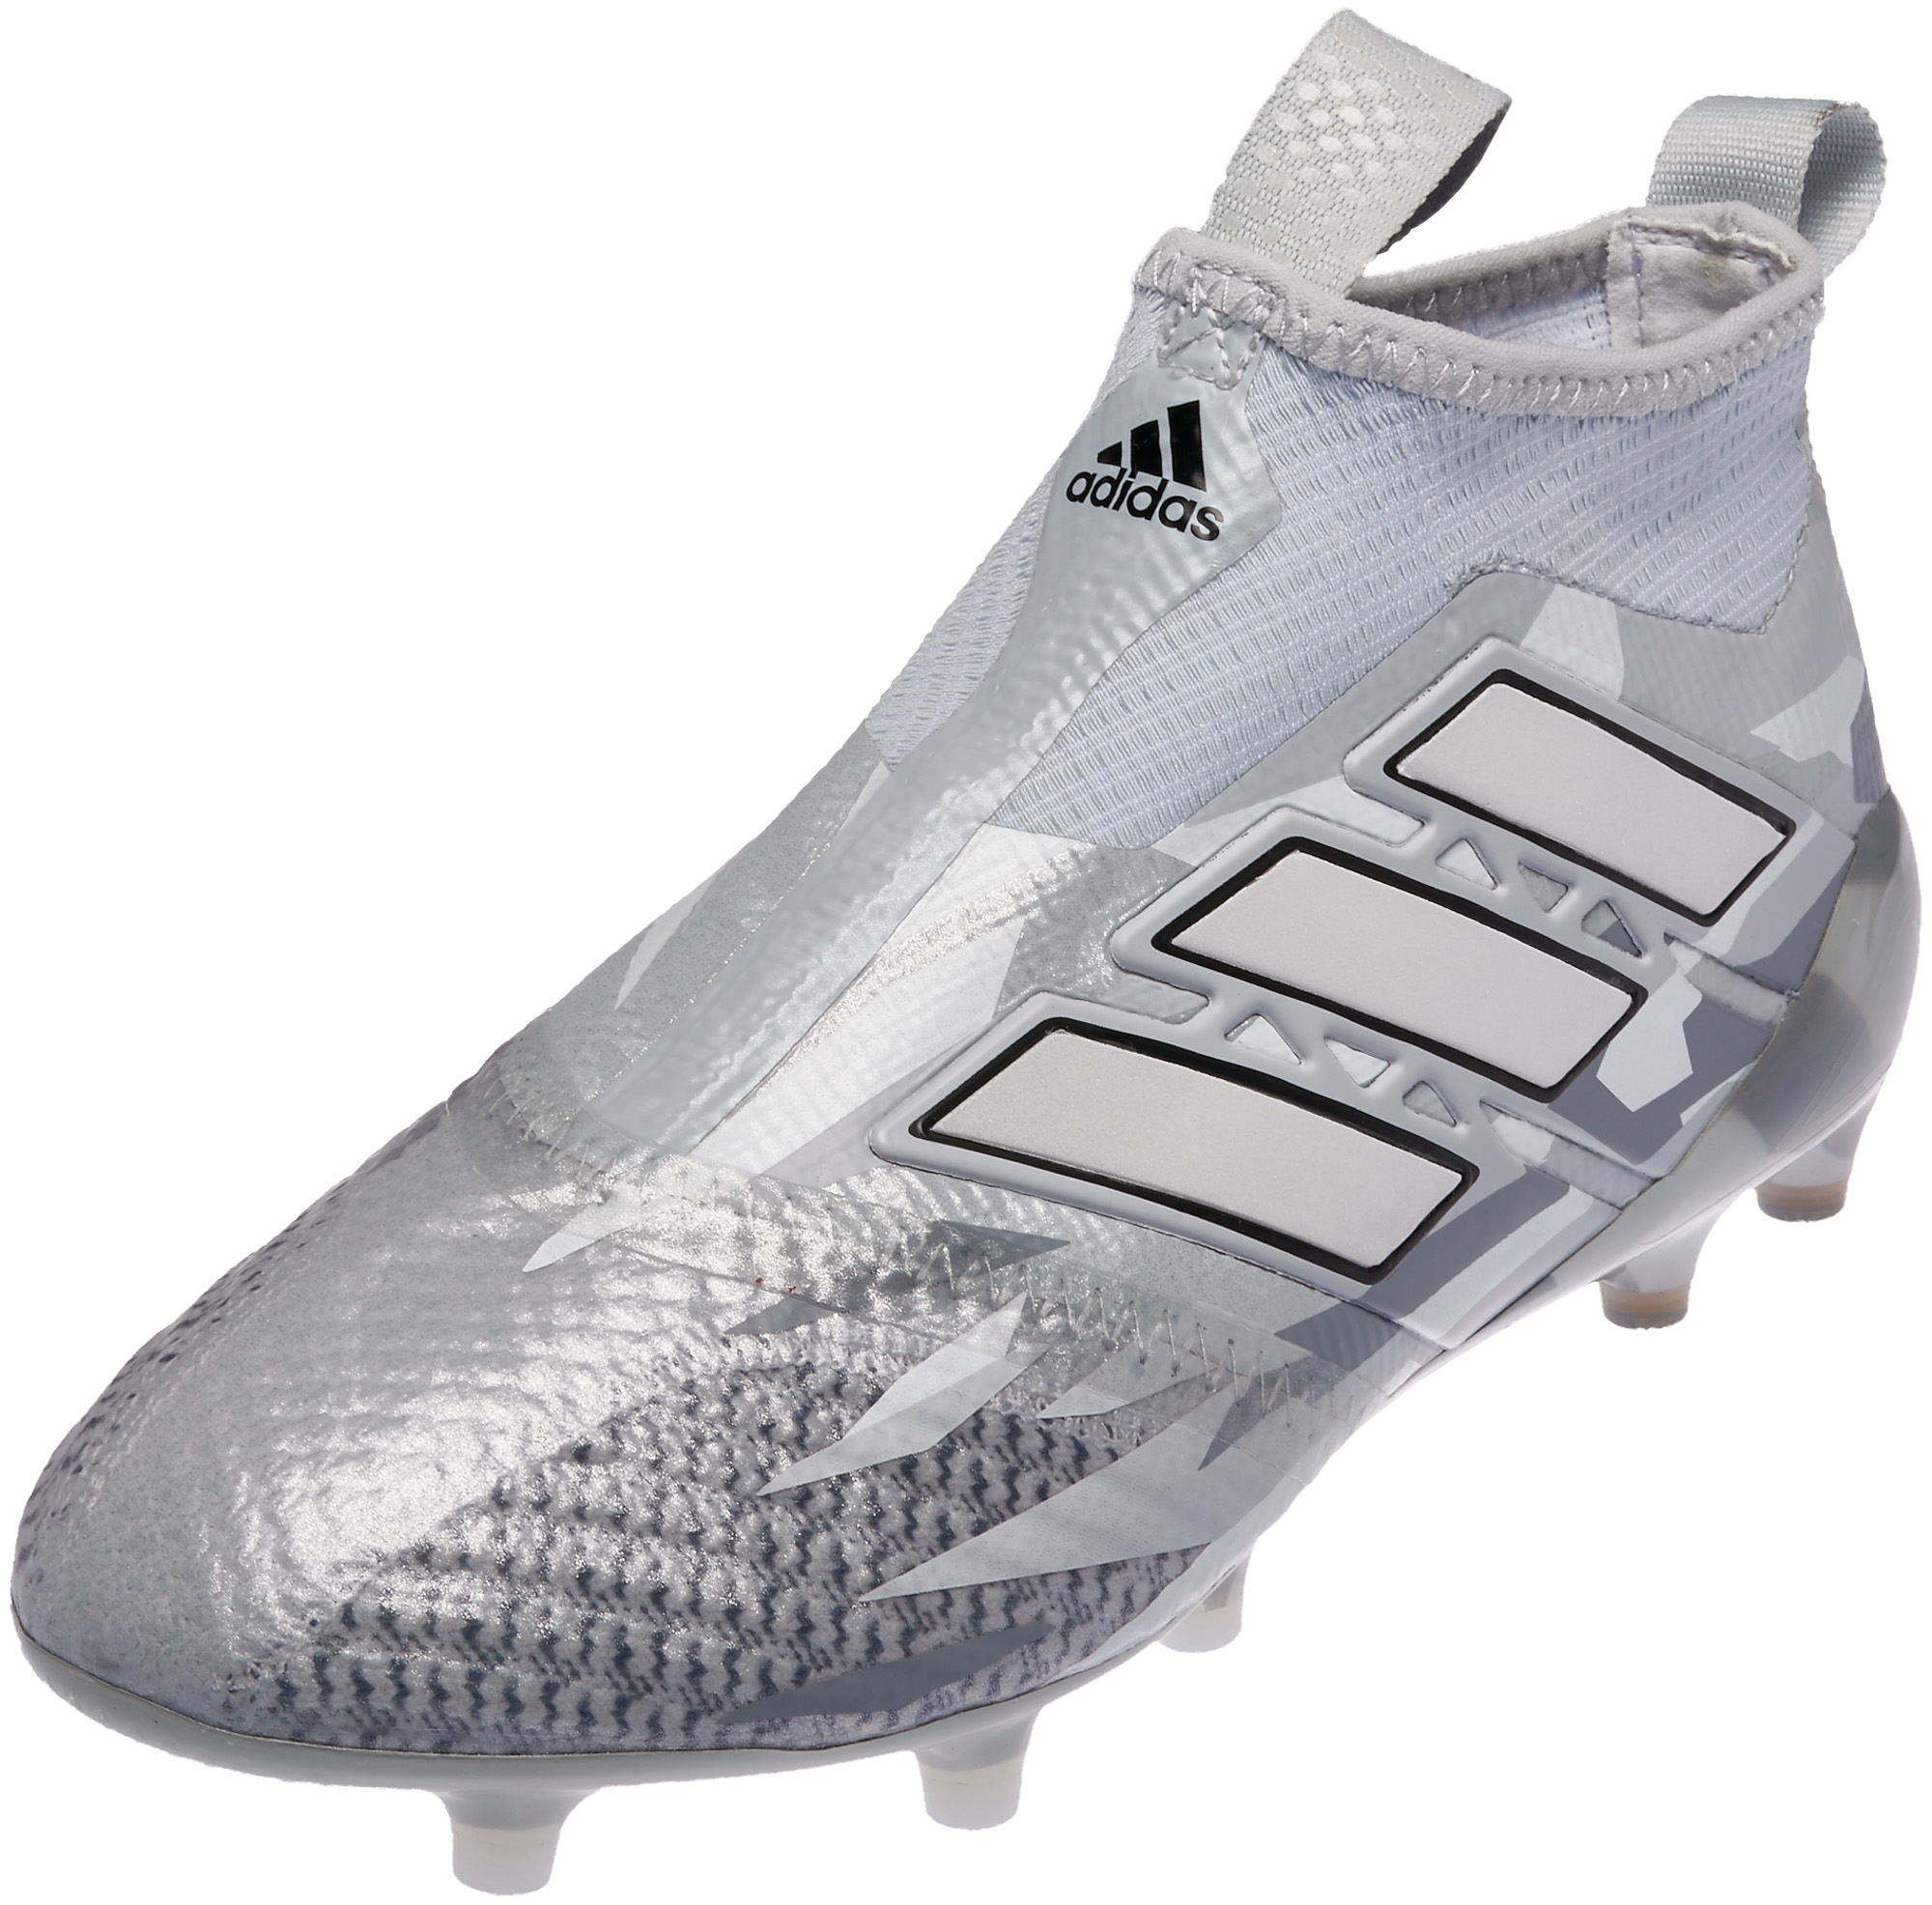 75606b6d2 adidas ACE 17 Purecontrol FG - Grey ACE Soccer Cleats